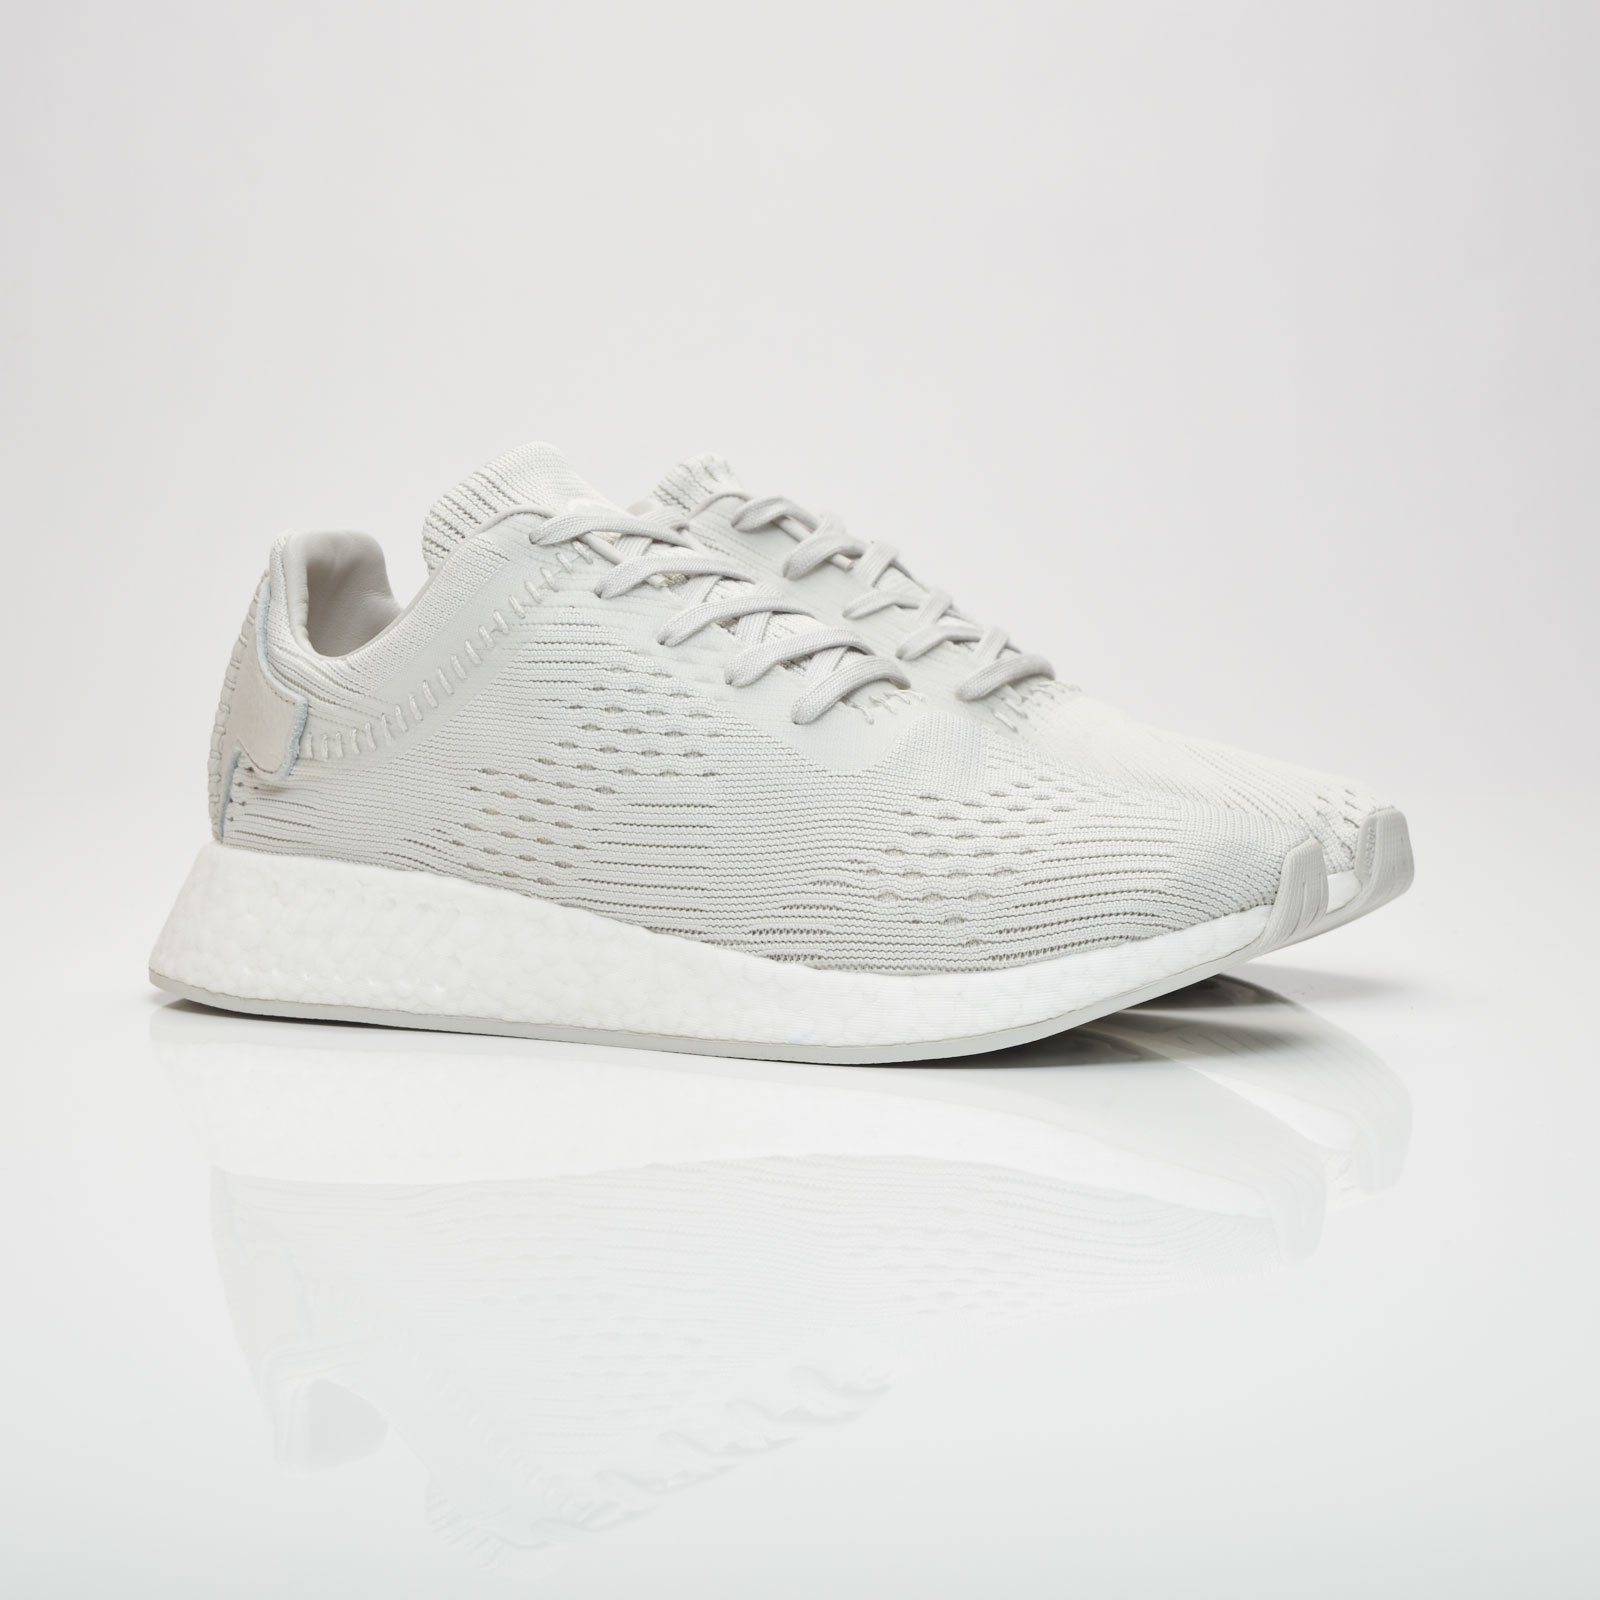 separation shoes 1598c 1f76d adidas NMD R2 Primeknit - Bb3118 - Sneakersnstuff | sneakers ...